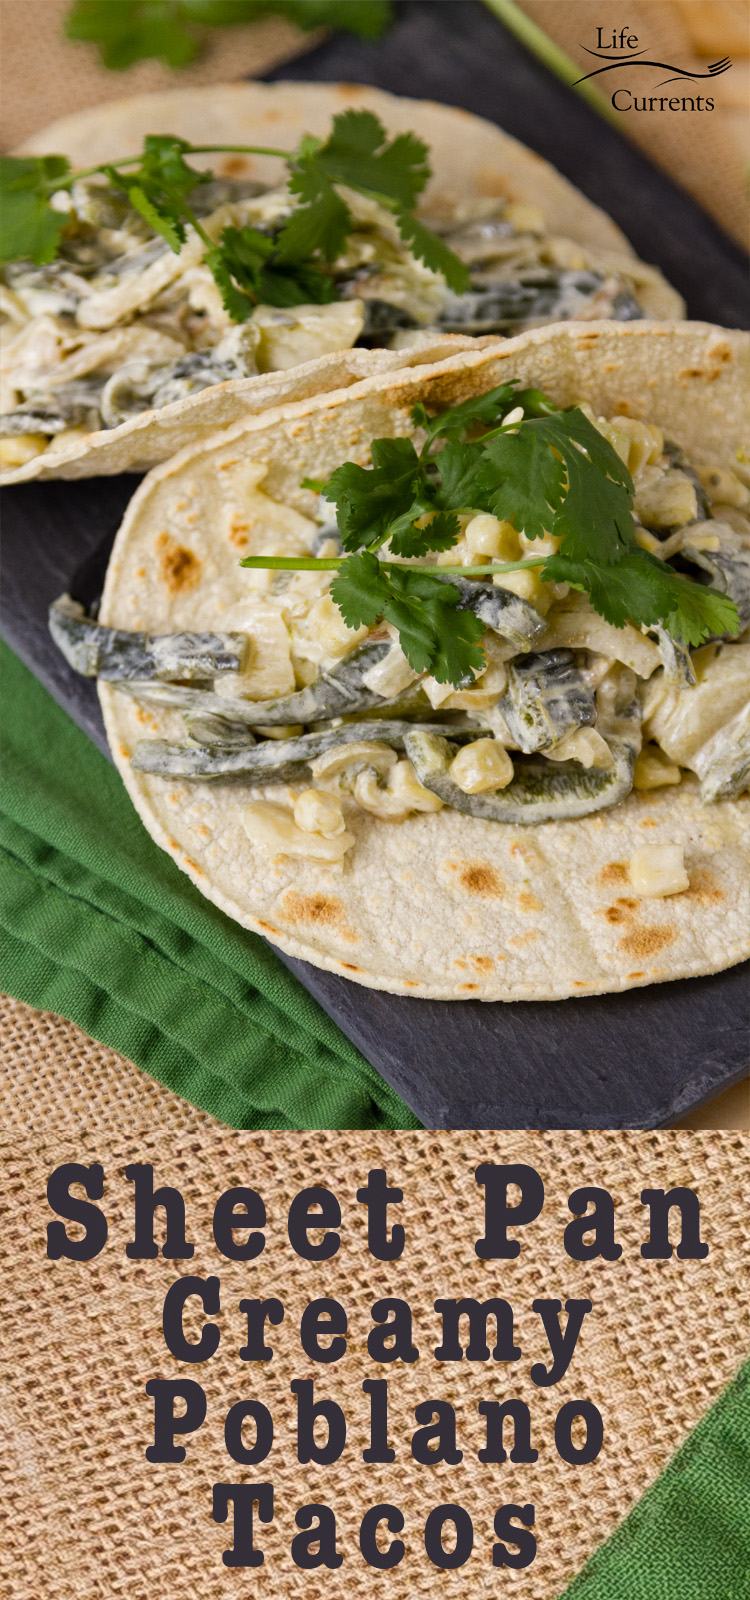 Sheet Pan Creamy Poblano Tacos - a great #TacoTuesday or #MeatlessMonday #mexican #poblano Meal!